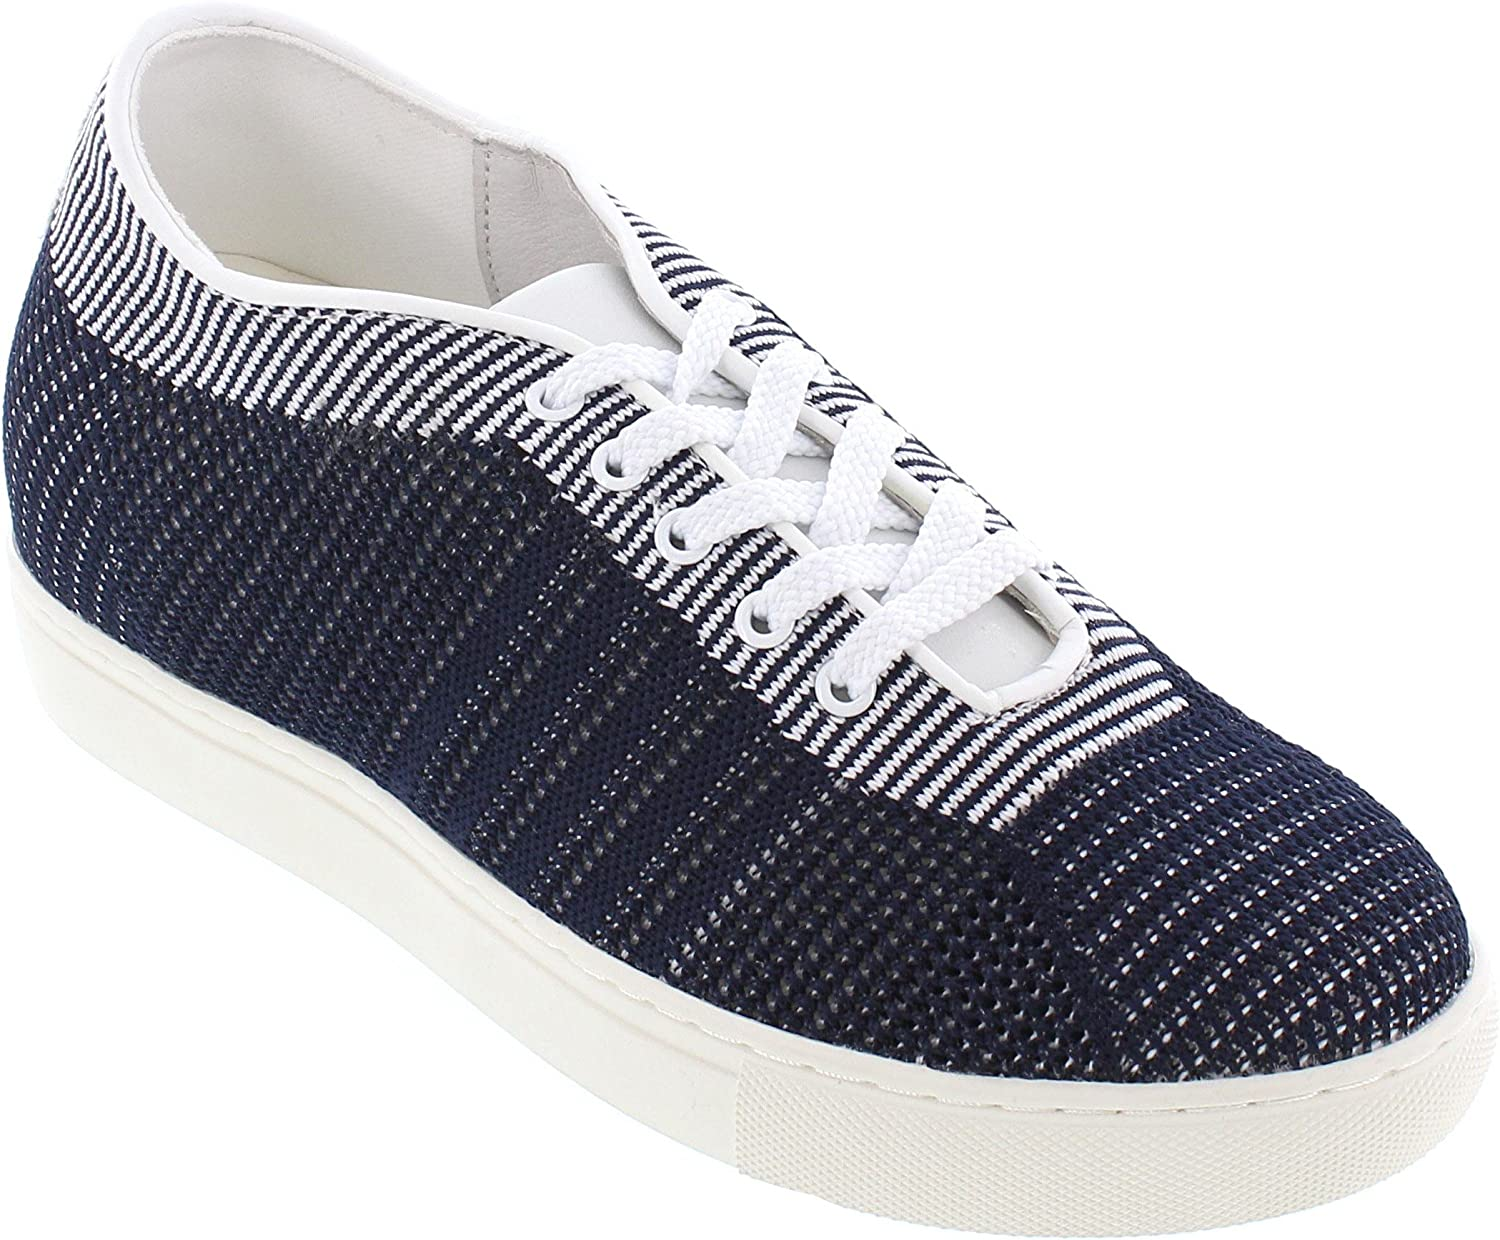 Purchase CALTO Men's supreme Invisible Height Increasing - Elevator Trainer Shoes